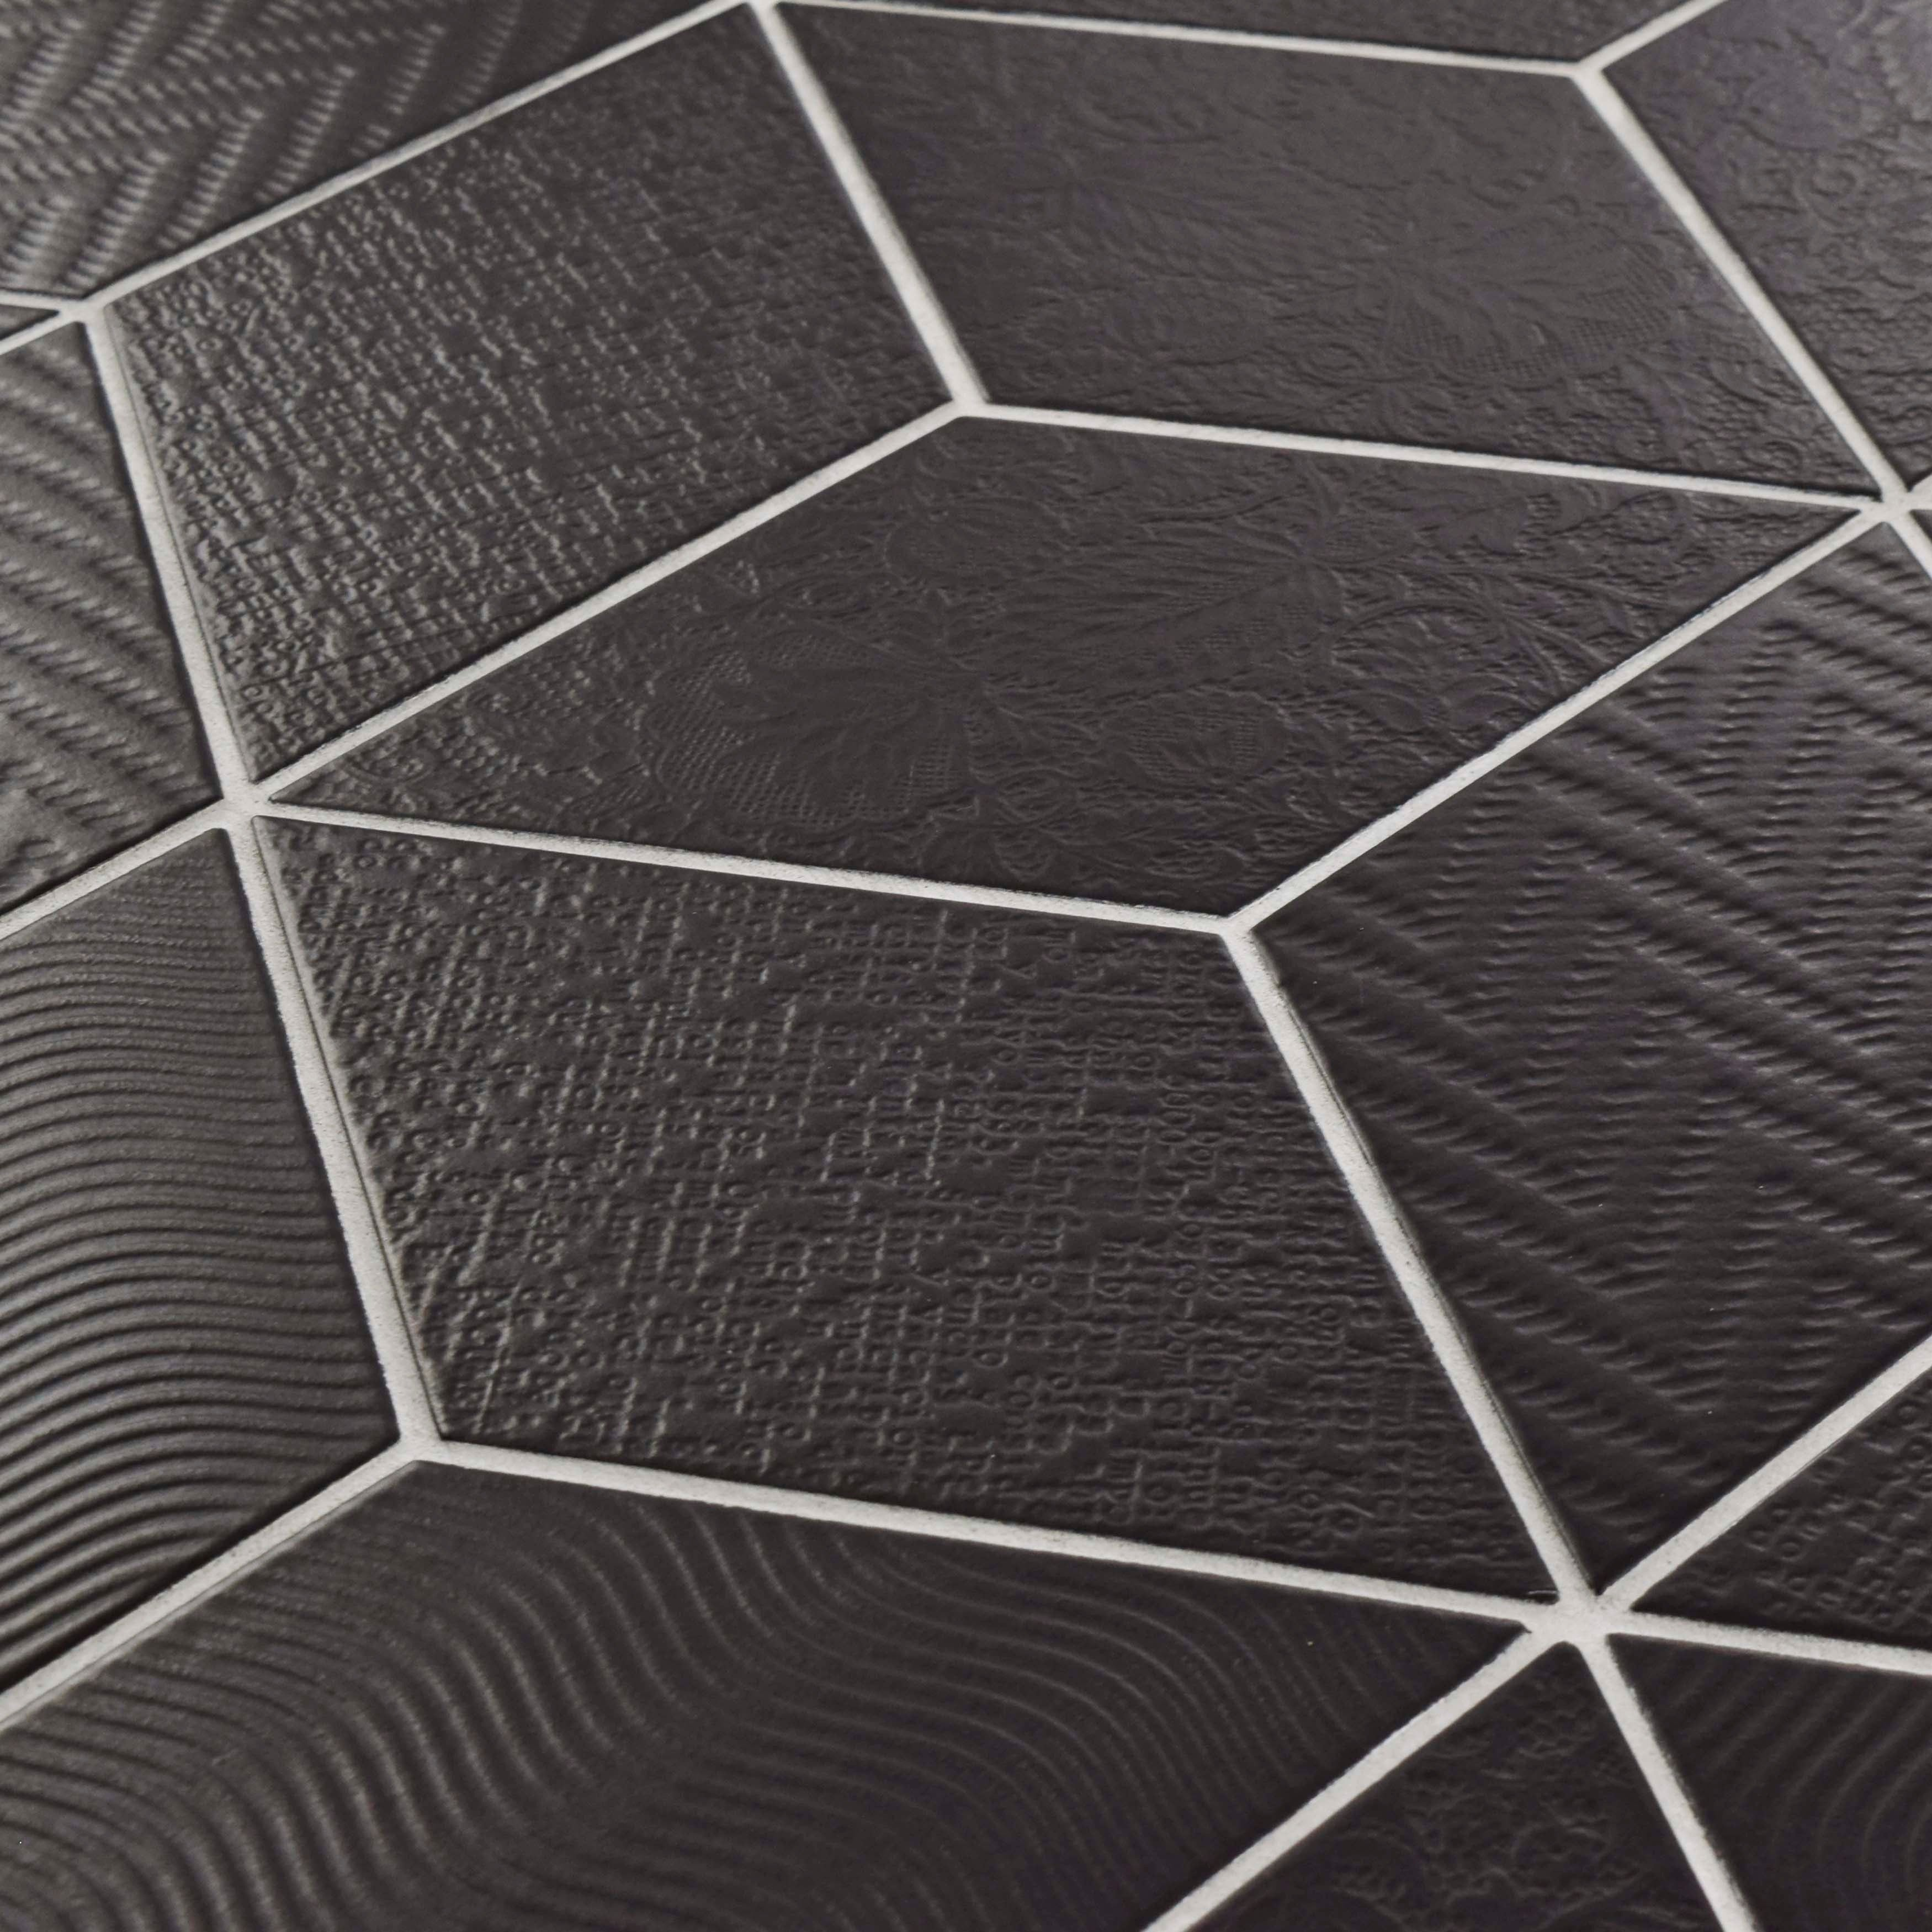 Somertile 55x95 inch rombo black porcelain floor and wall tile somertile 55x95 inch rombo black porcelain floor and wall tile 60 tiles1168 sqft free shipping today overstock 19912389 dailygadgetfo Image collections